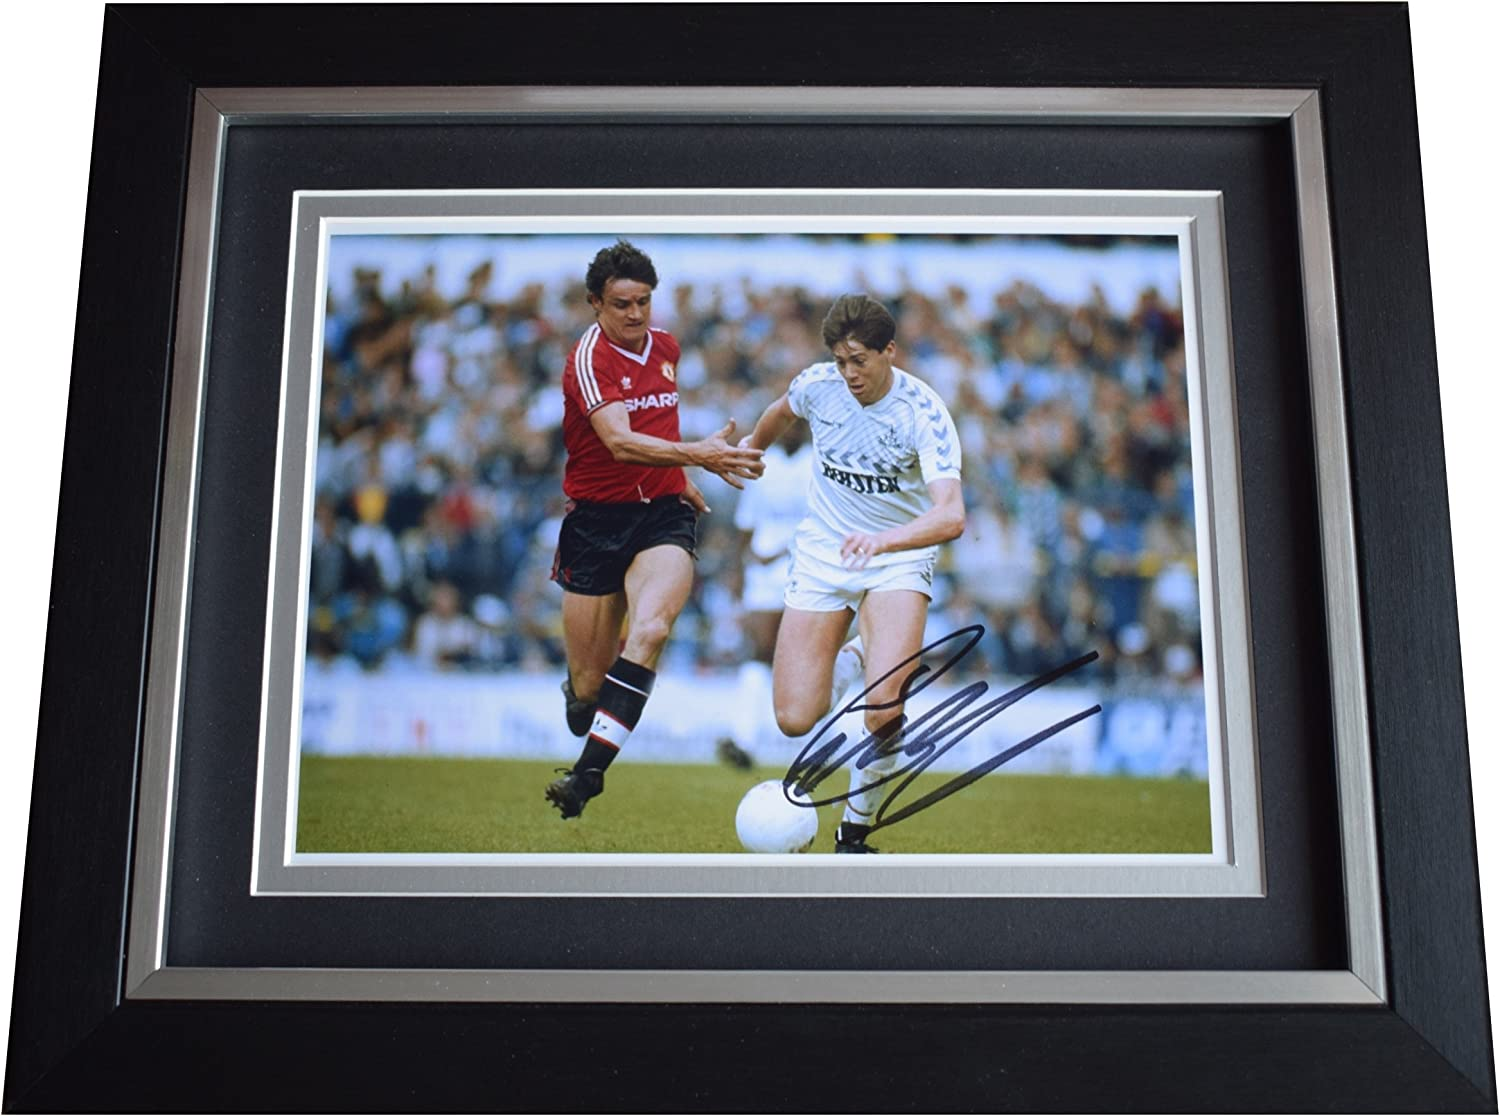 Sportagraphs Chris Waddle SIGNED 10x8 FRAMED Photo Autograph Display Tottenham Football COA PERFECT GIFT